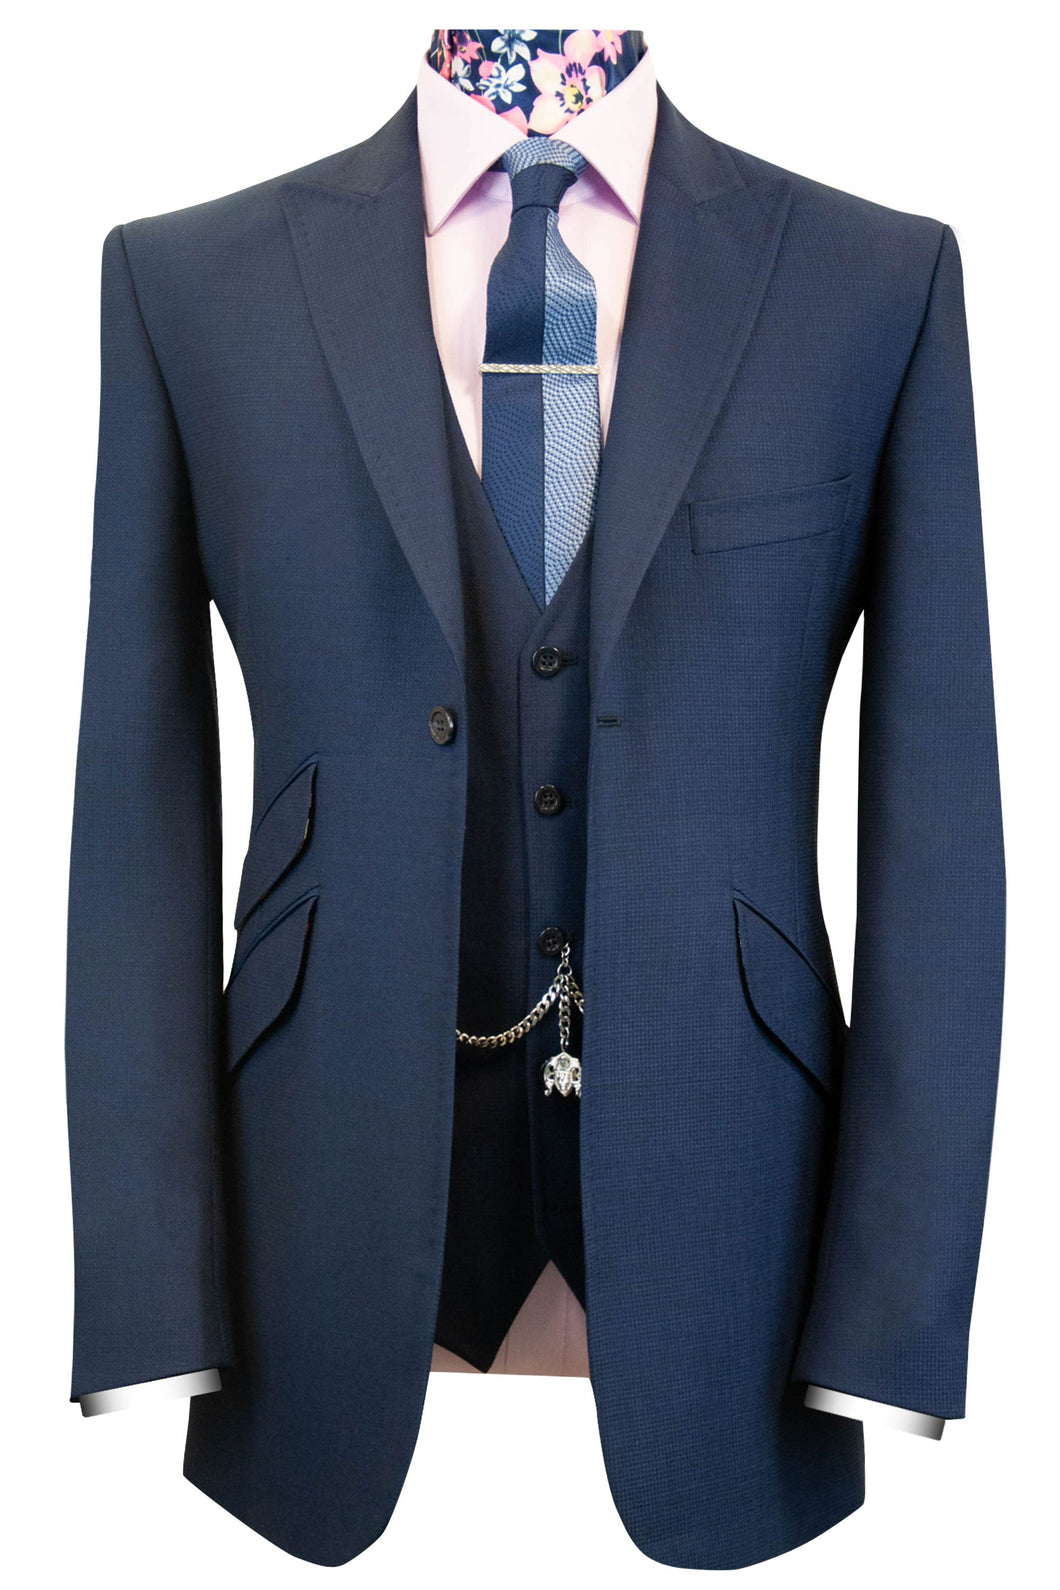 The Parker Blue Classic Suit